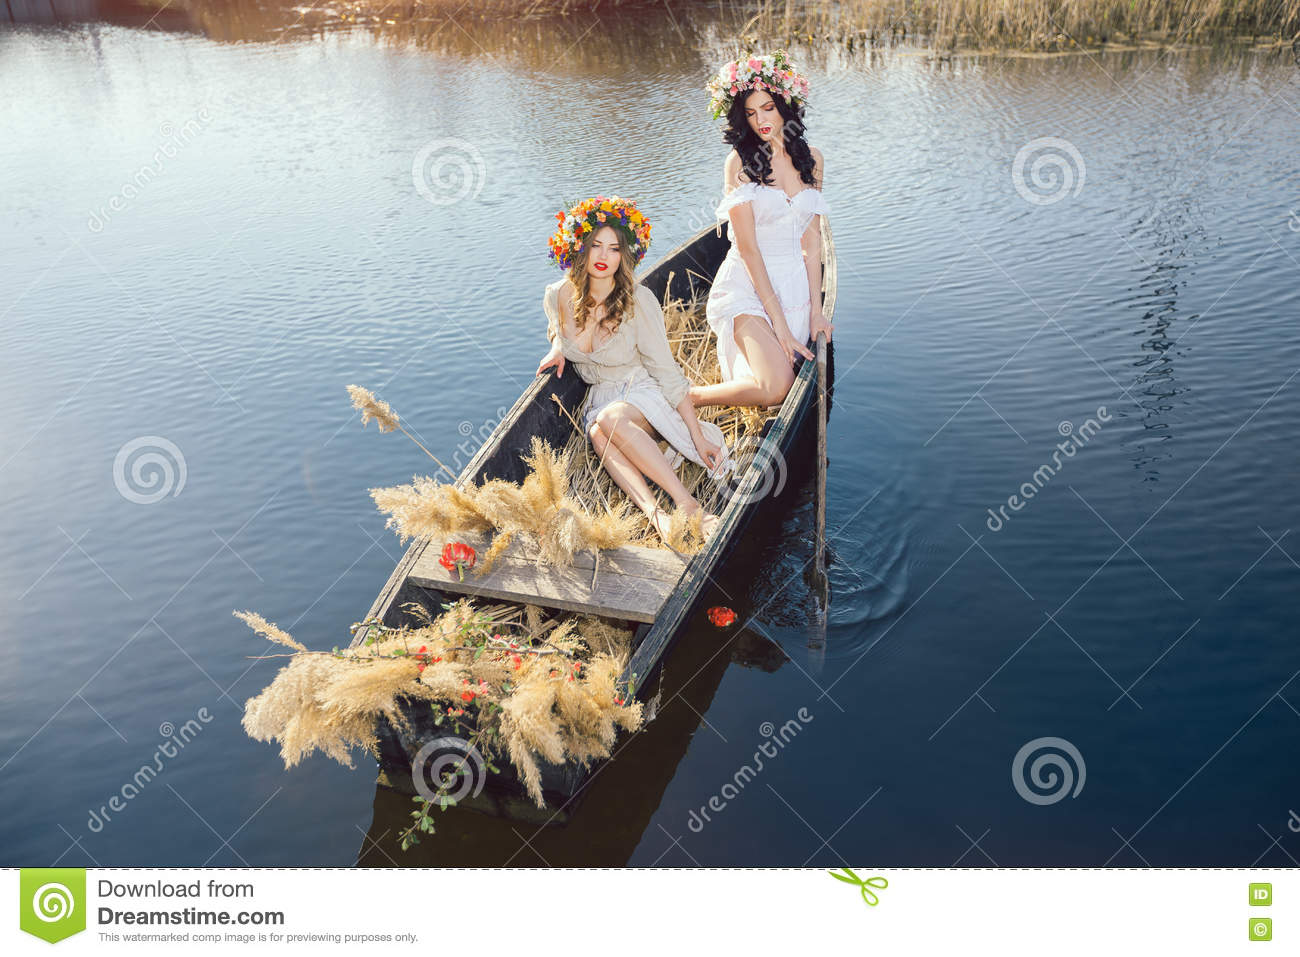 Fantasy art photo of a beautiful girls lying in boat